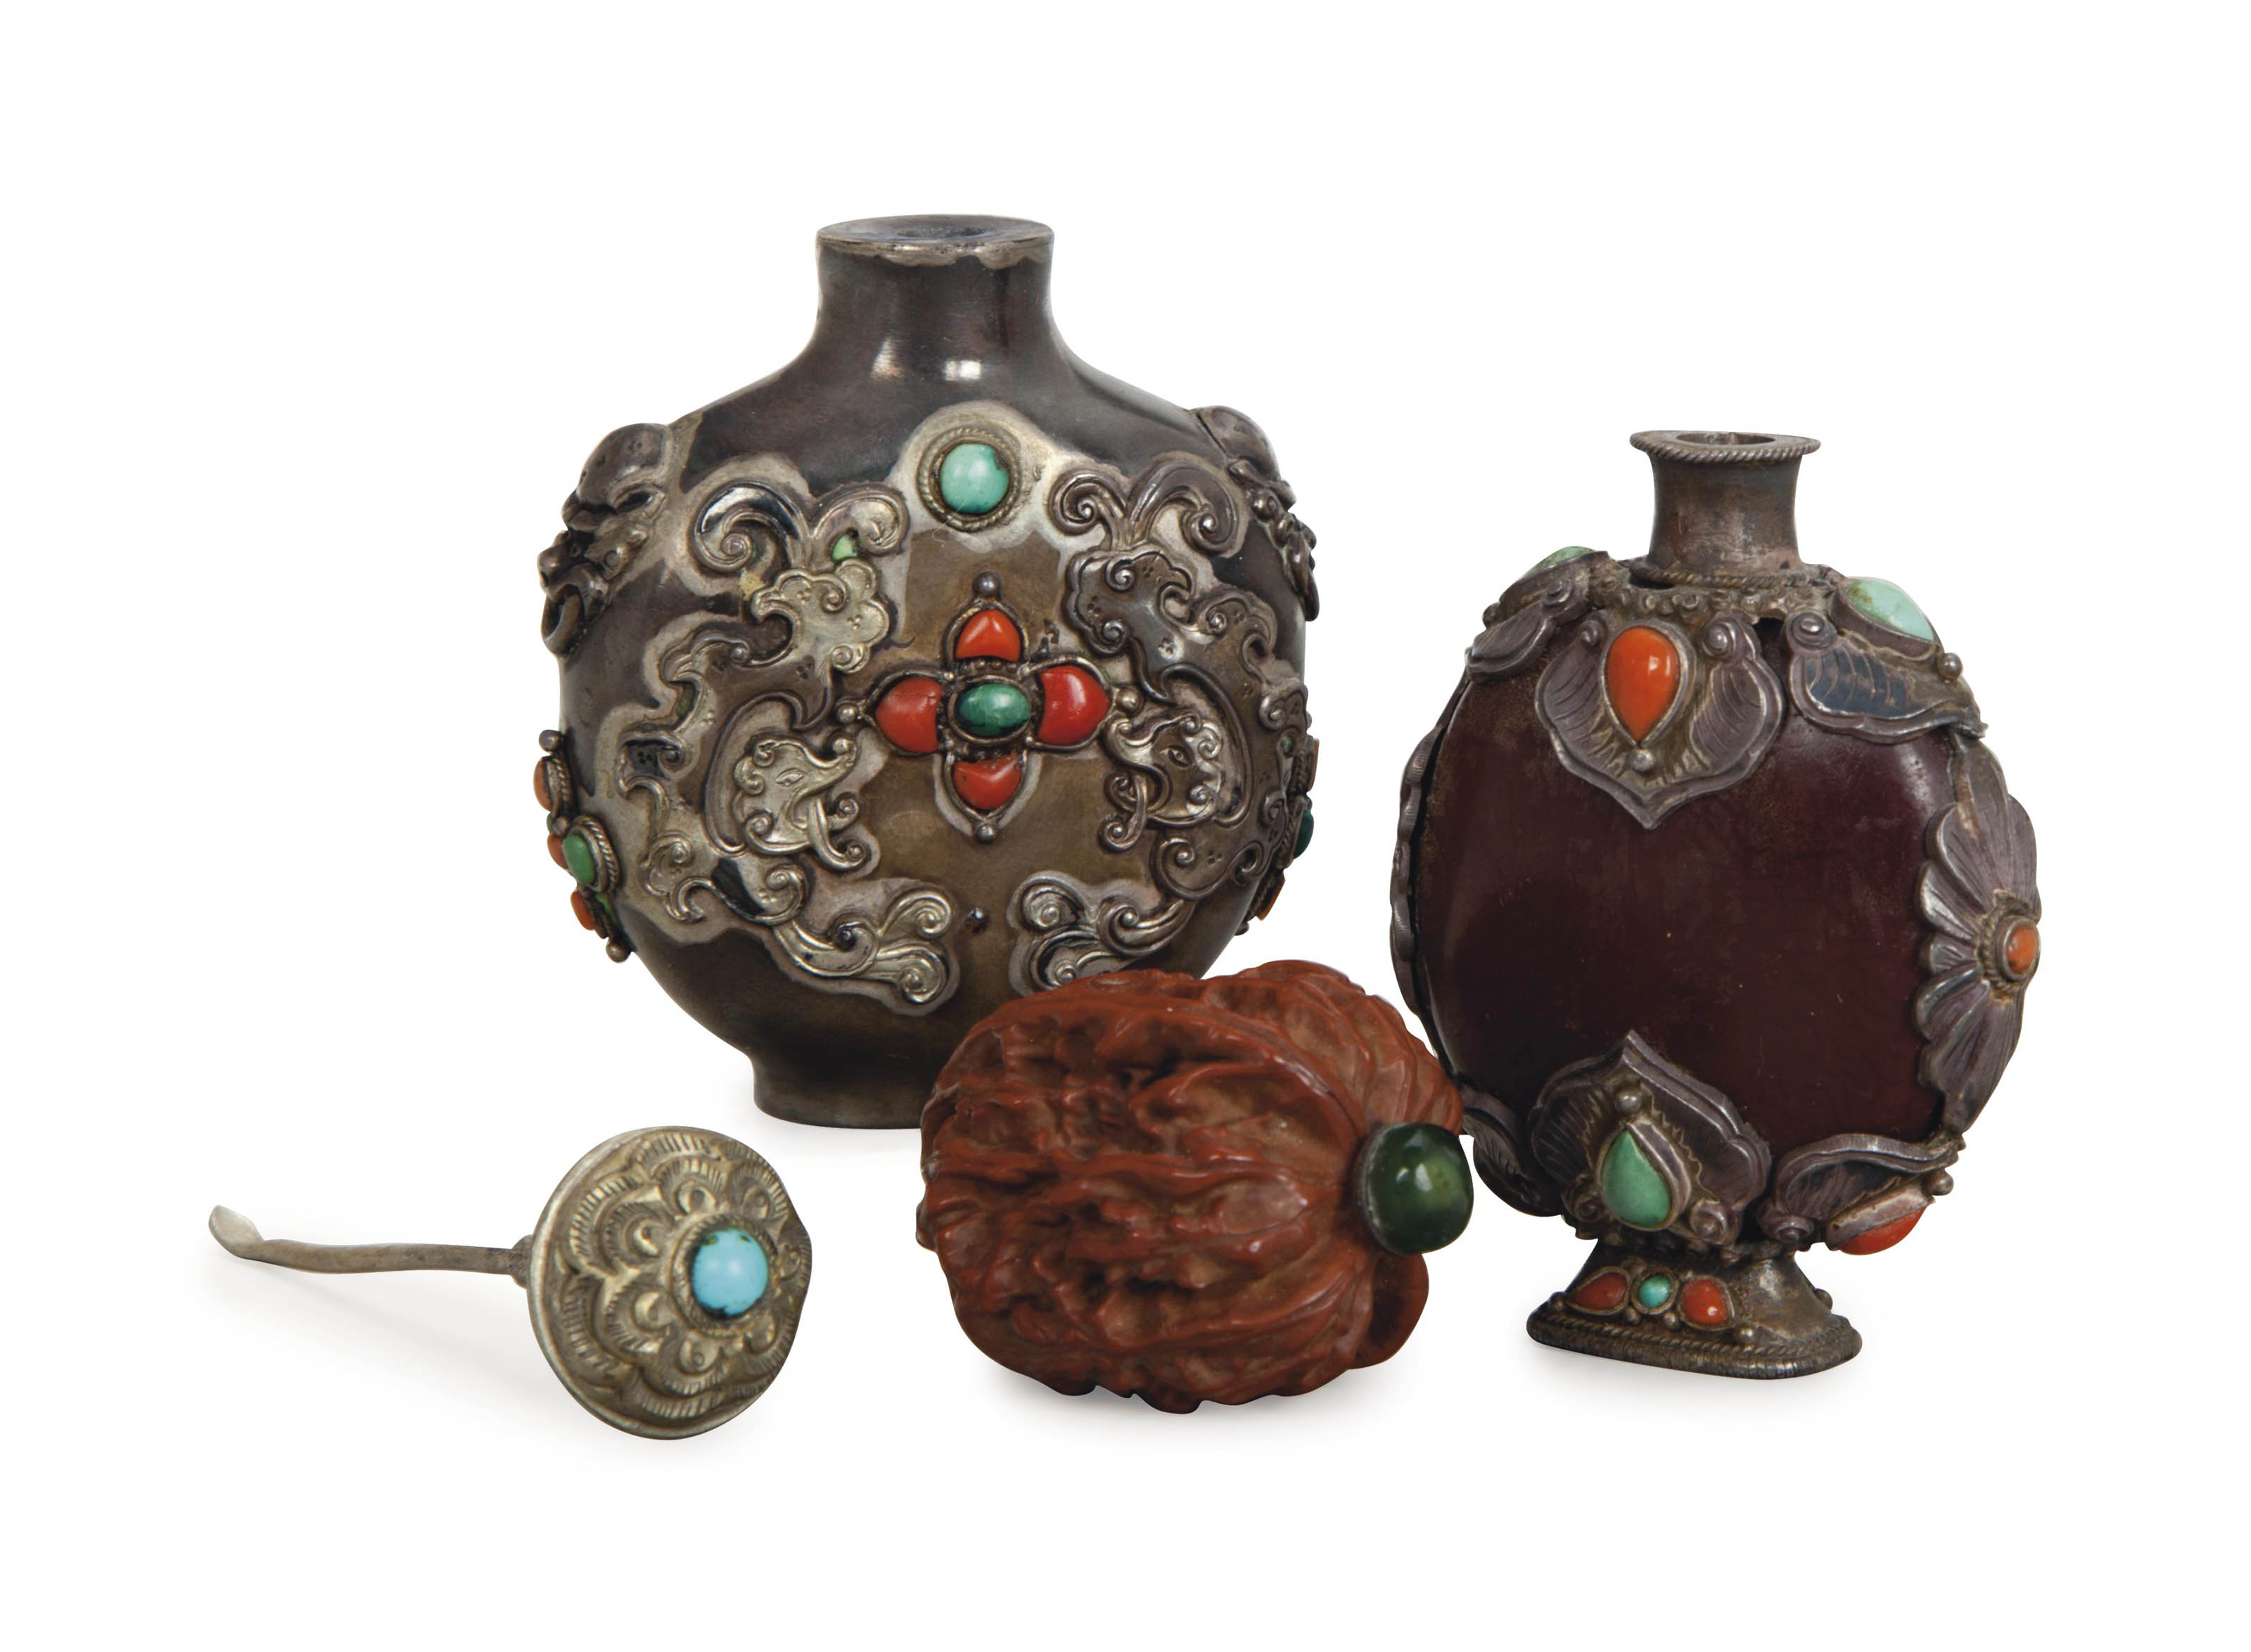 TWO CHINESE CARVED NUT SNUFF BOTTLES, AND A PEWTER SNUFF BOTTLE,